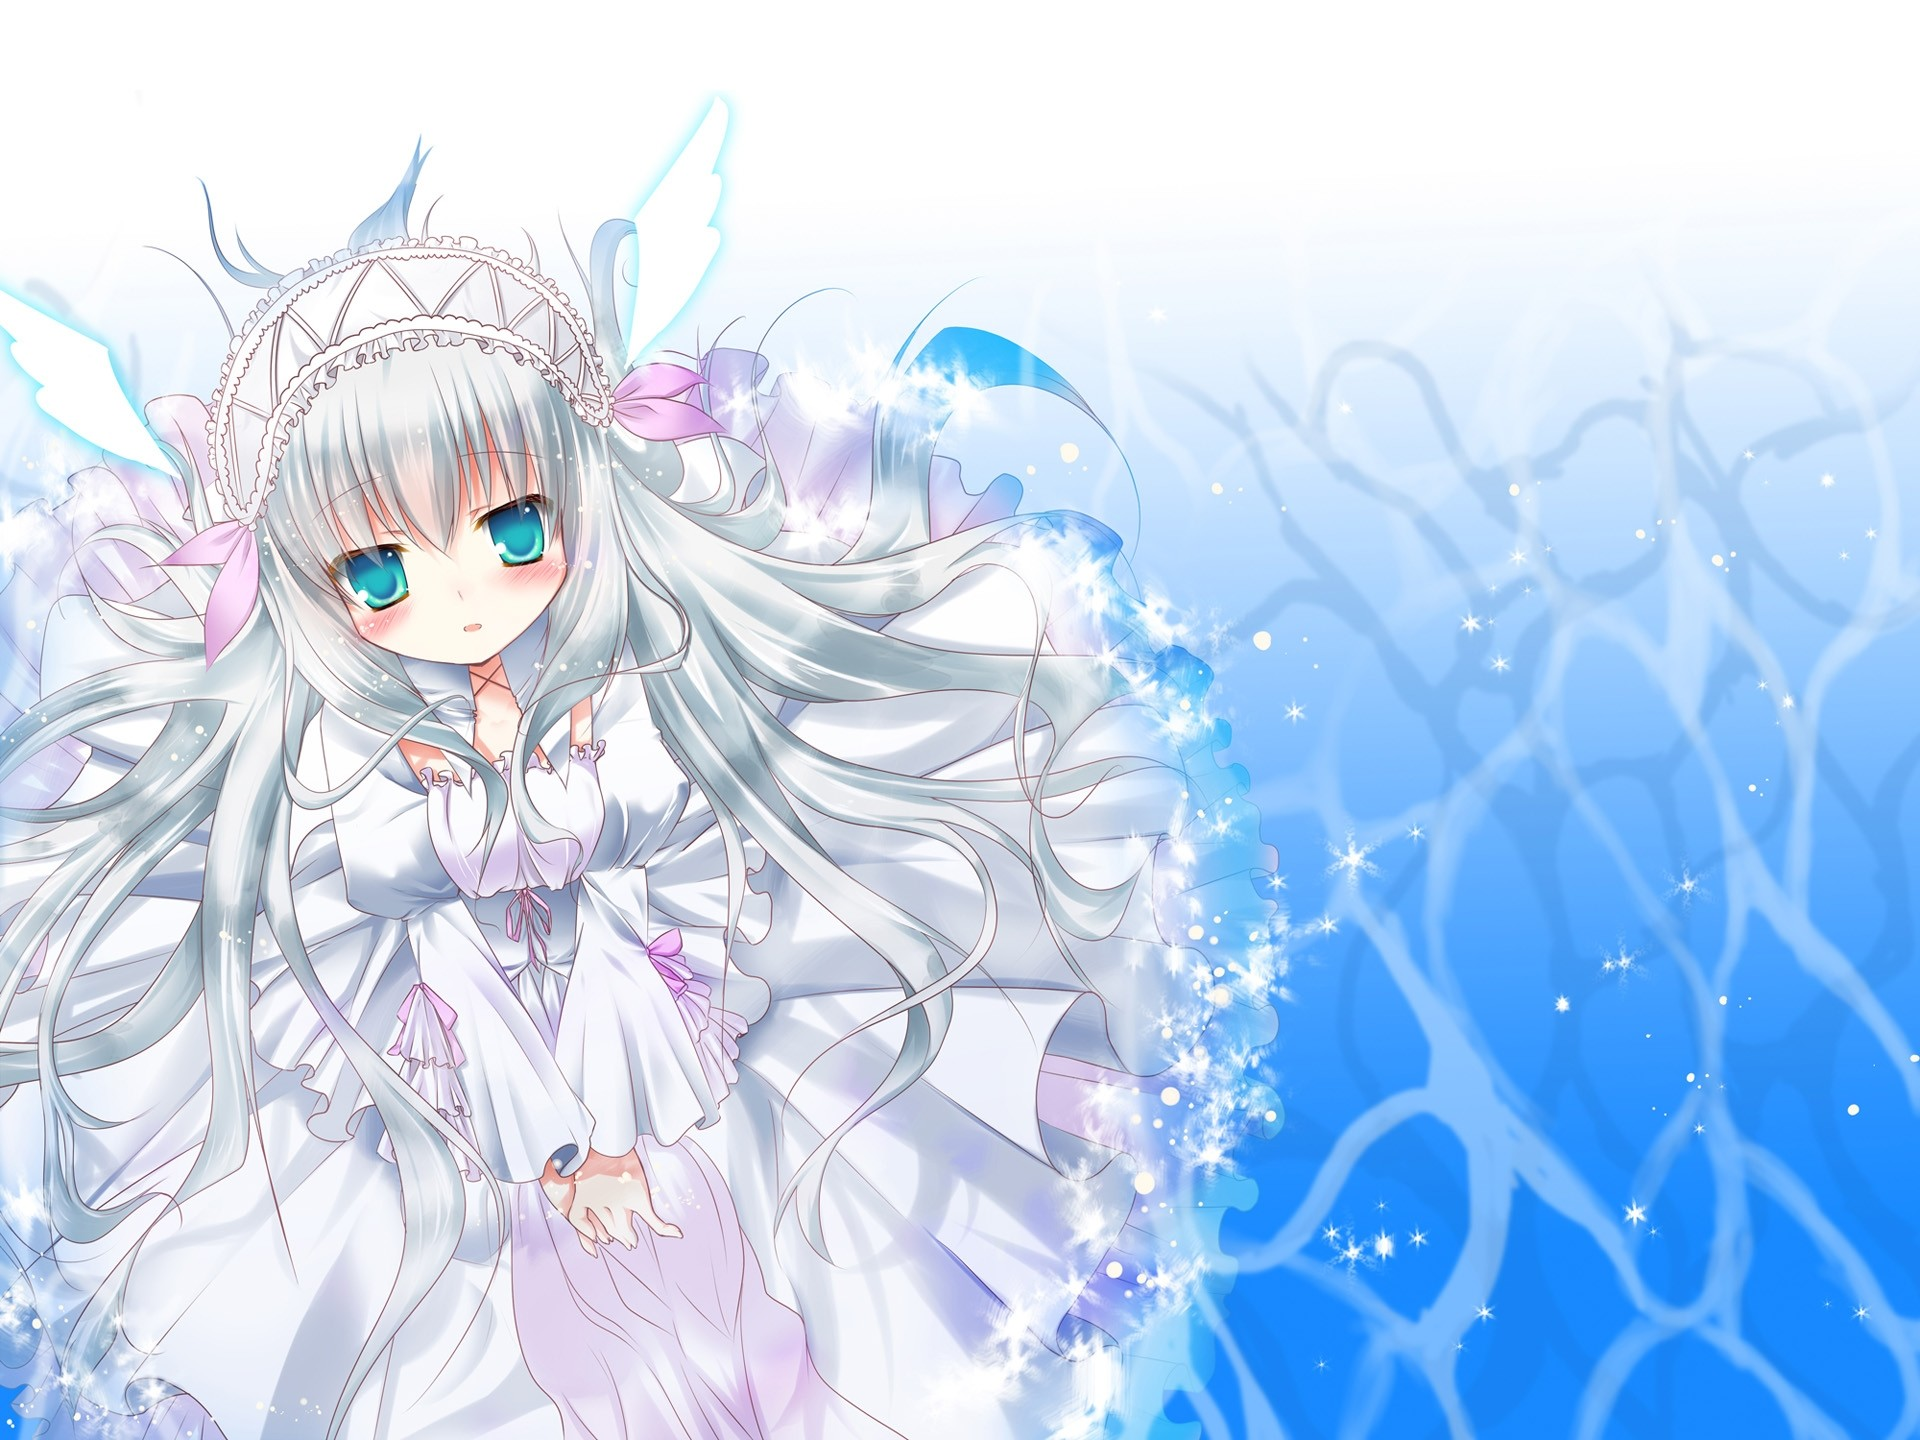 1920x1080 Anime Girls Cat Girl Nekomimi Short Hair Blue Original Characters White Background